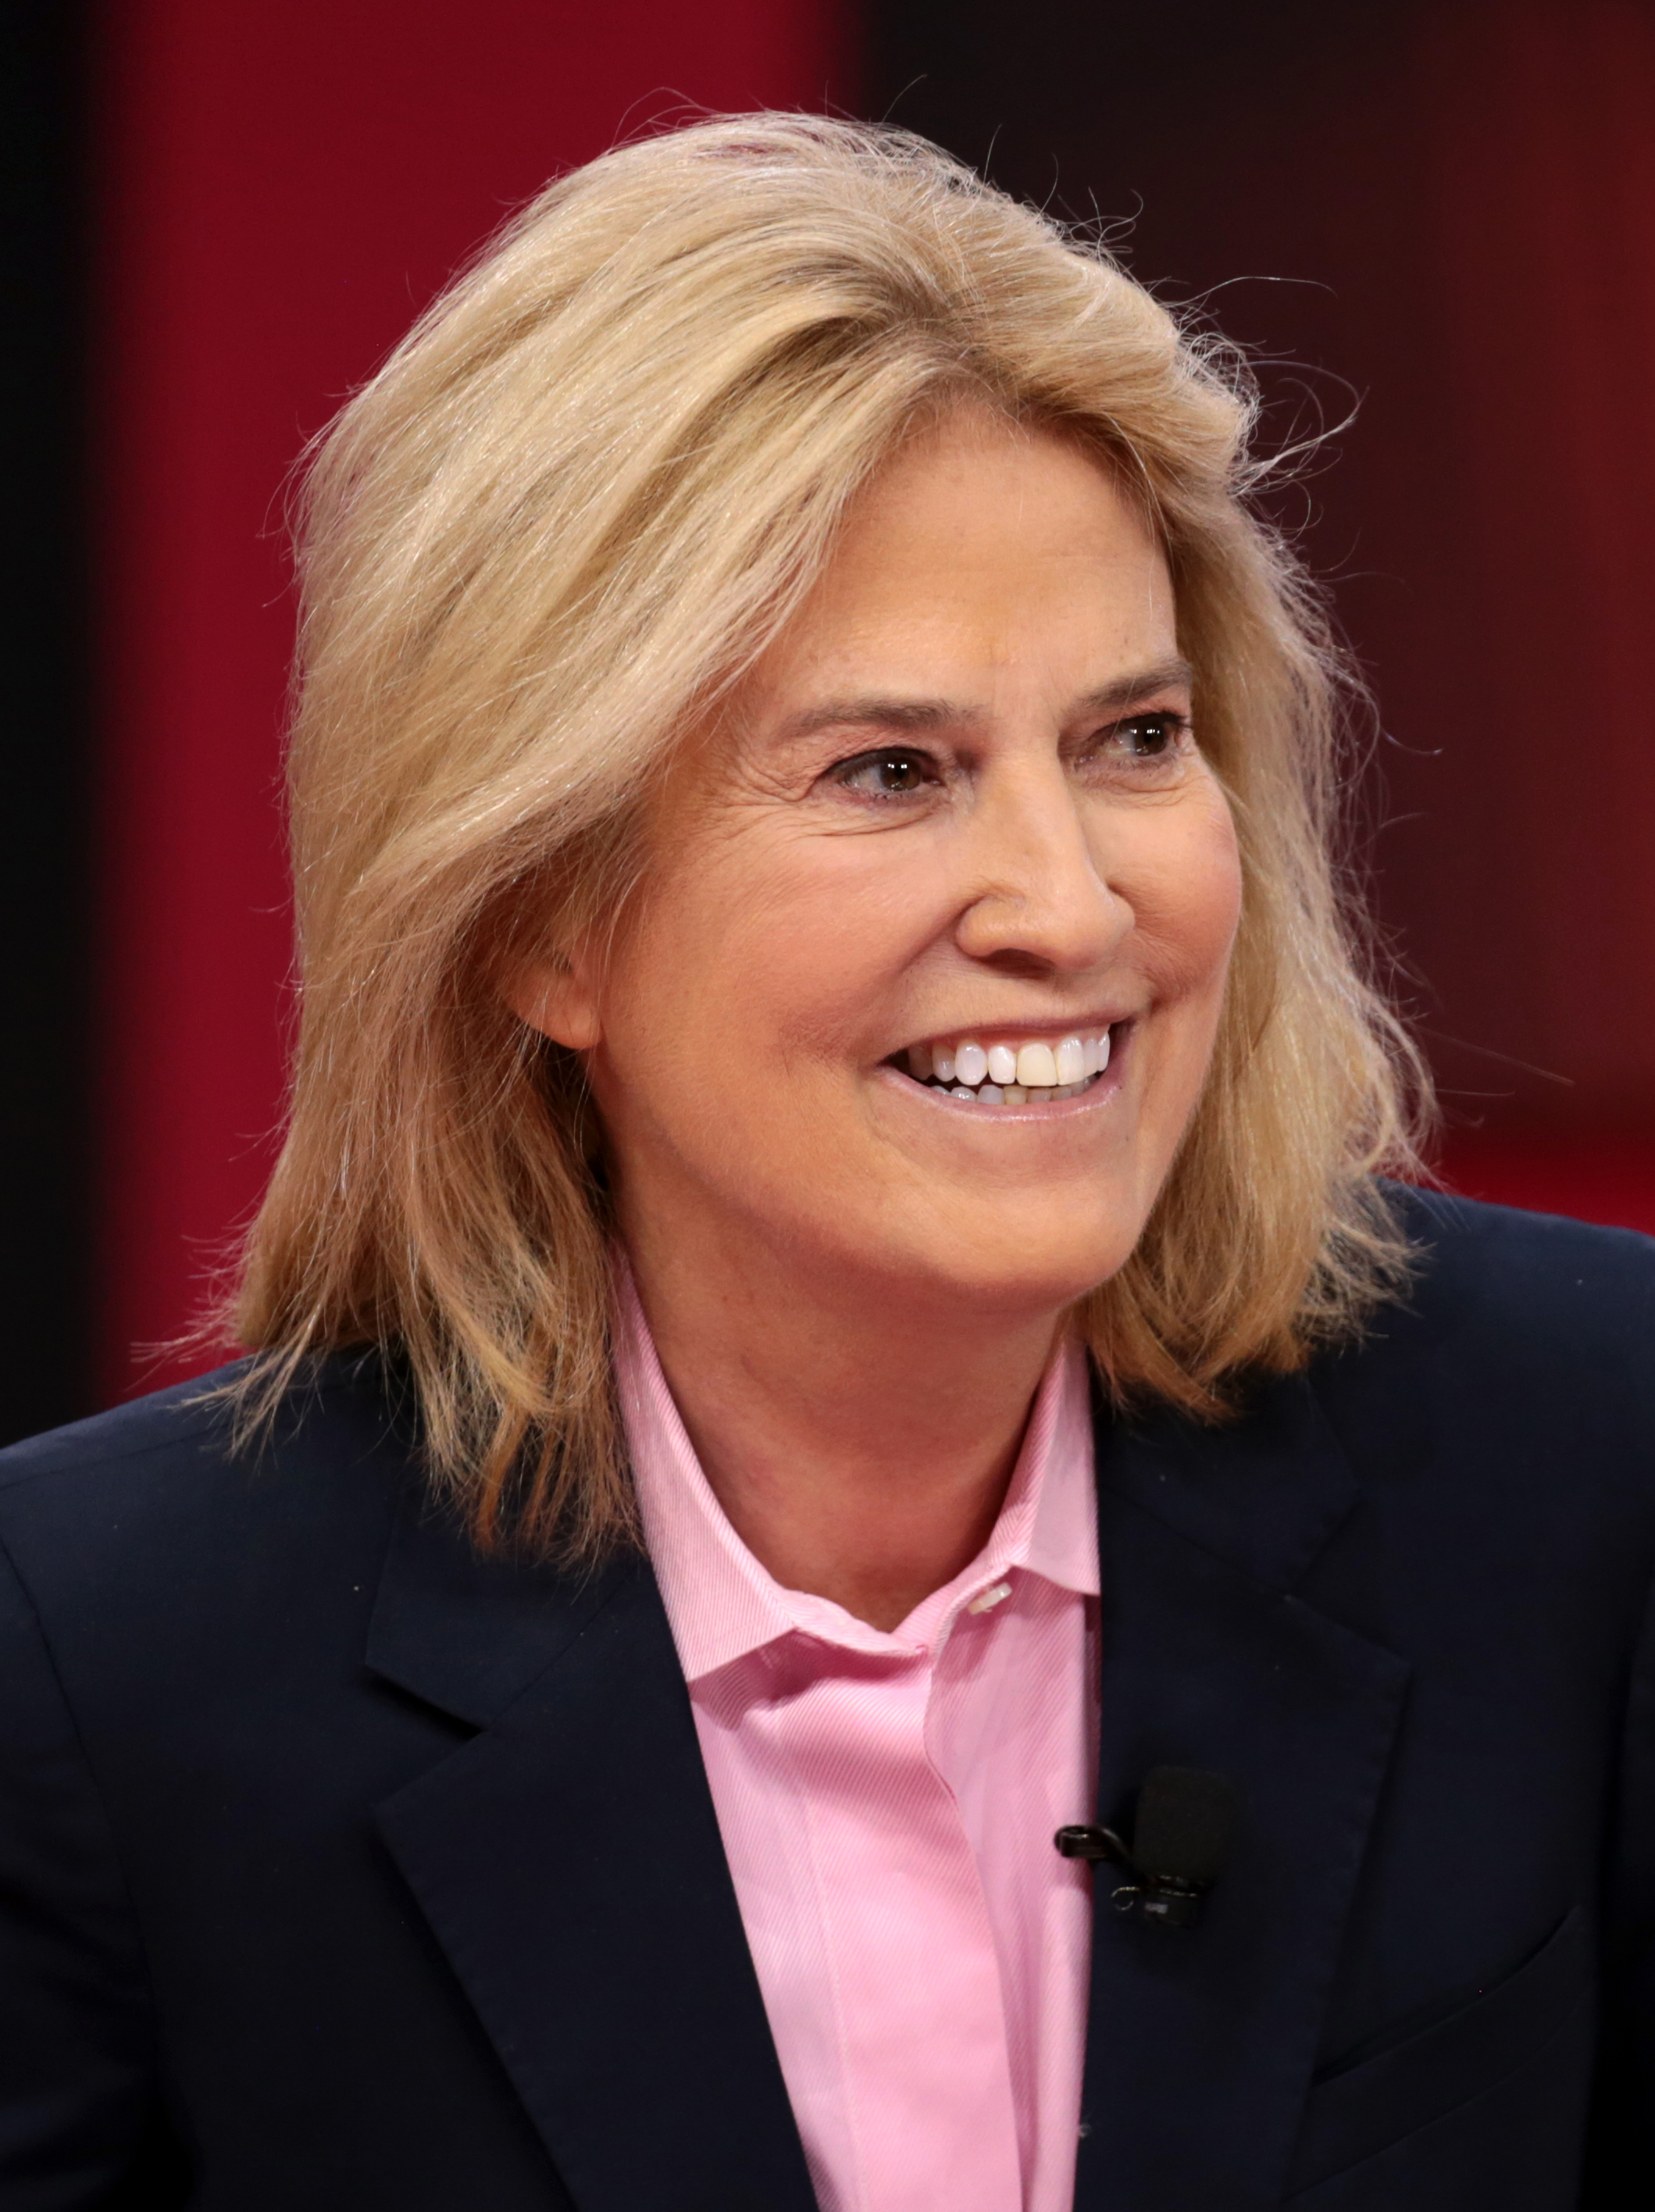 The 64-year old daughter of father (?) and mother(?) Greta Van Susteren in 2018 photo. Greta Van Susteren earned a  million dollar salary - leaving the net worth at 35 million in 2018